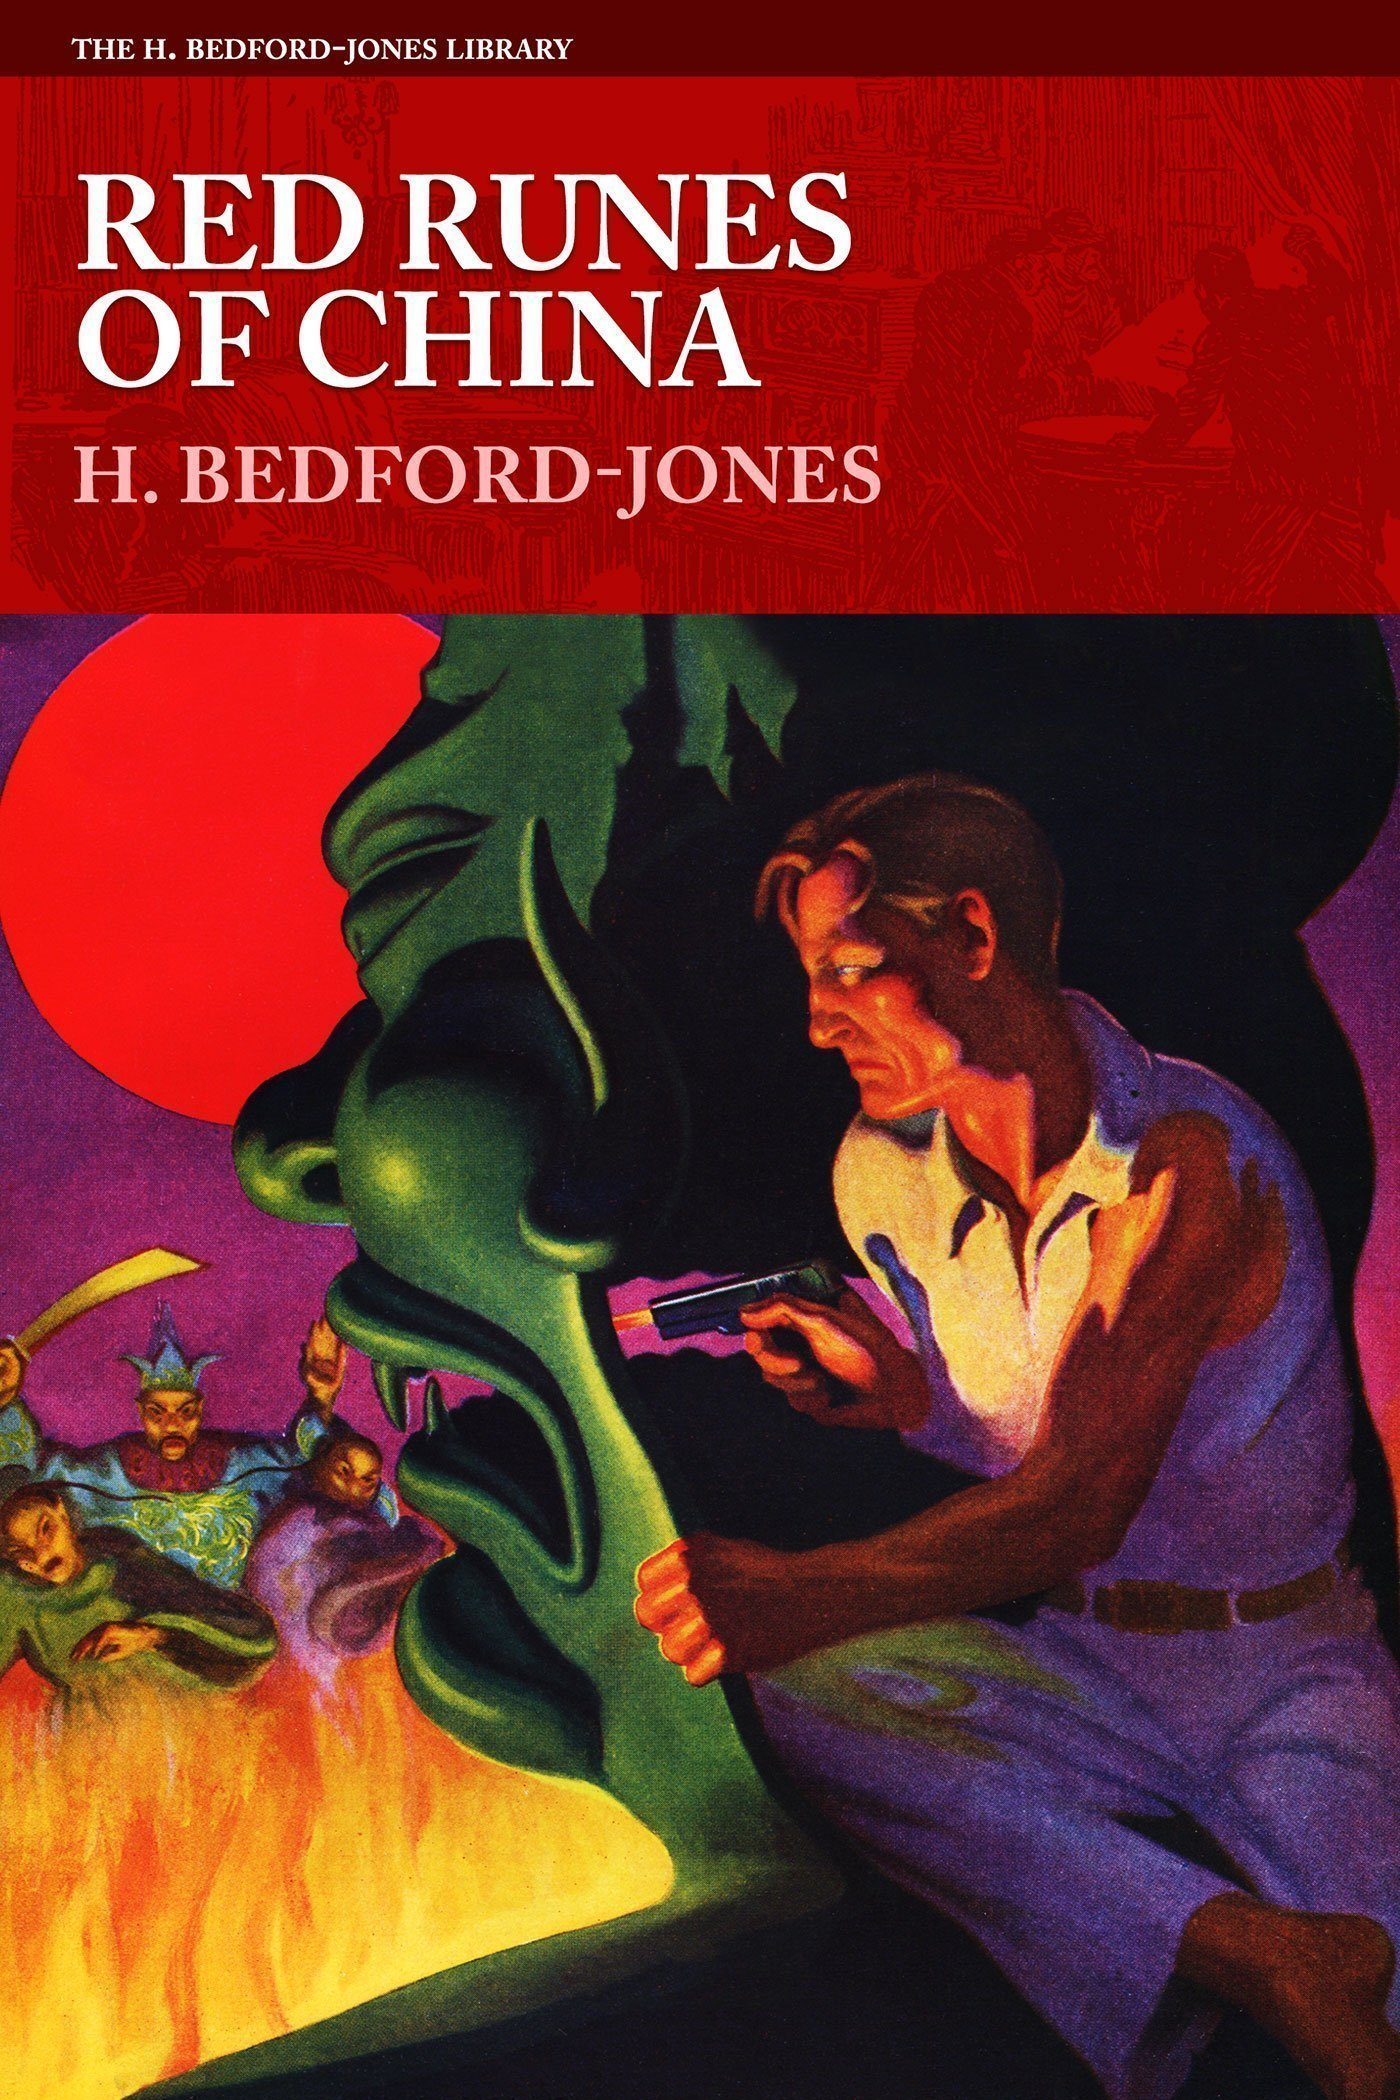 Red Runes of China by H. Bedford-Jones